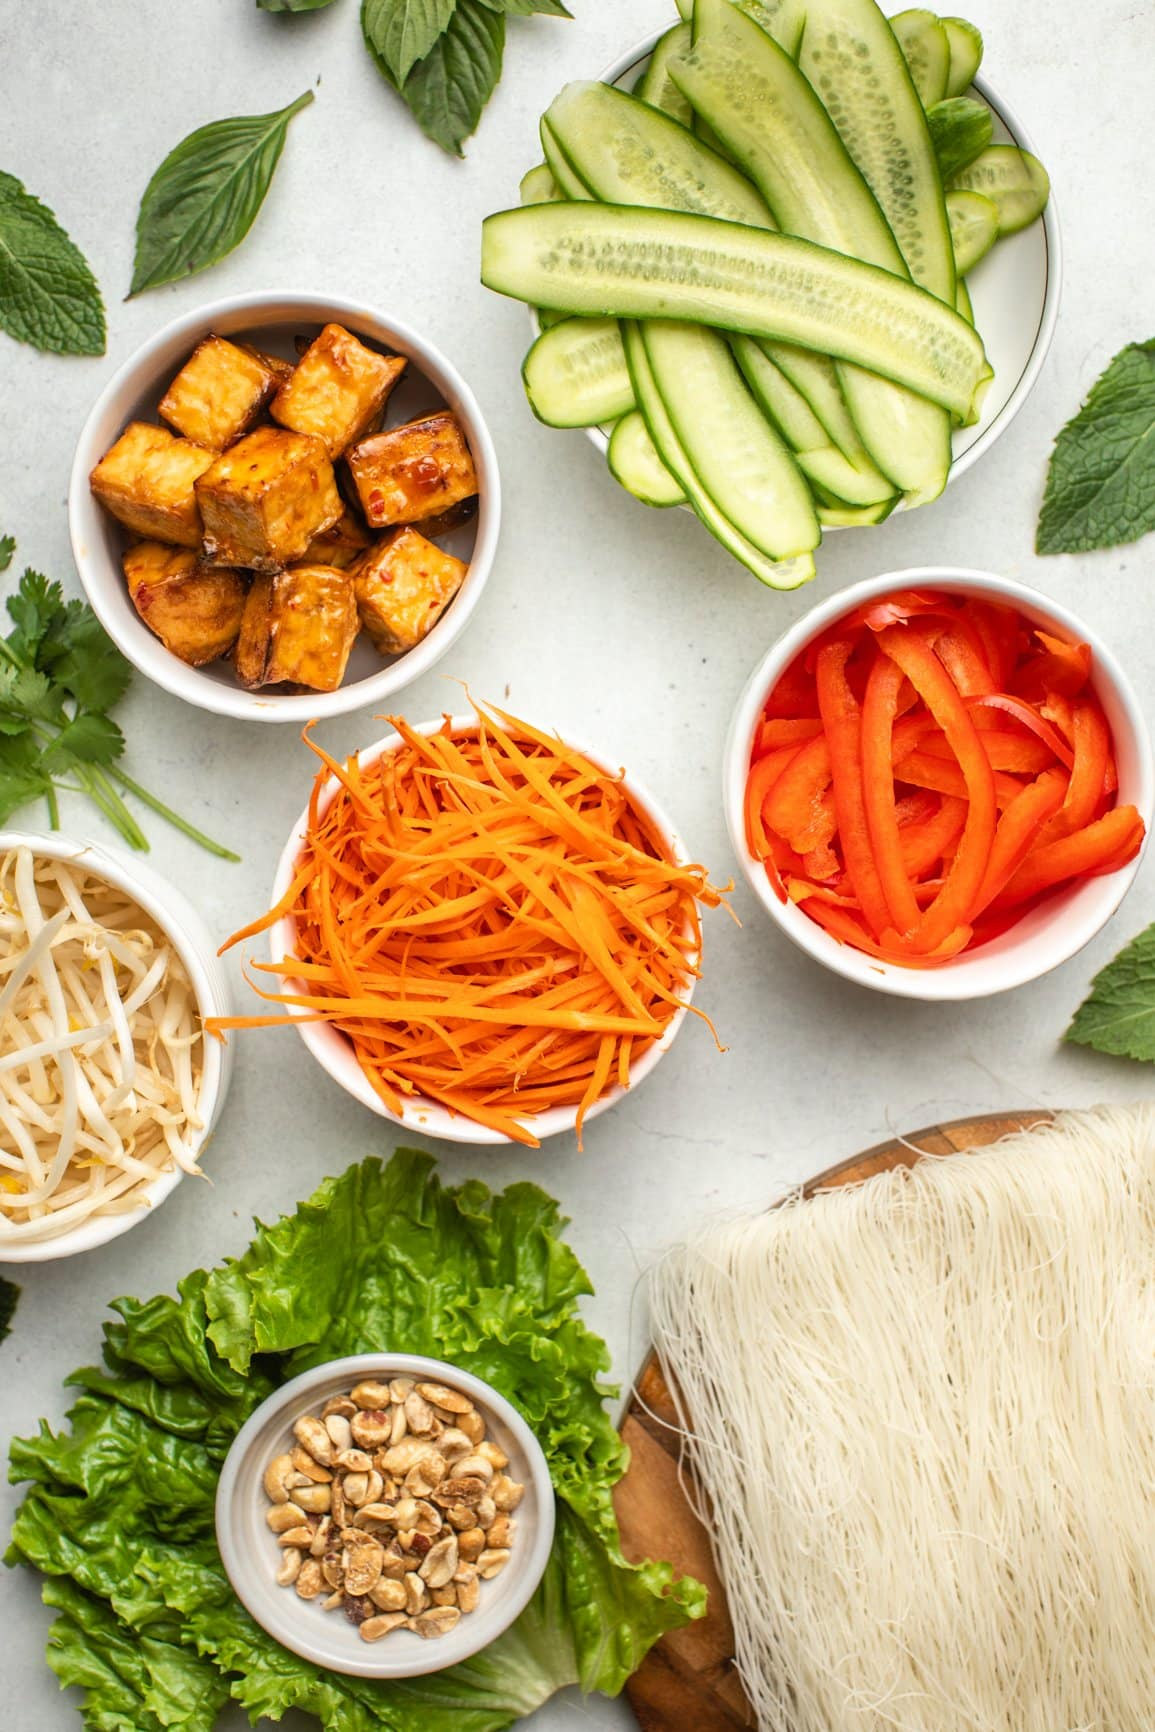 ingredients for vemicelli noodle bowls in small white bowls arranged on marble countertop